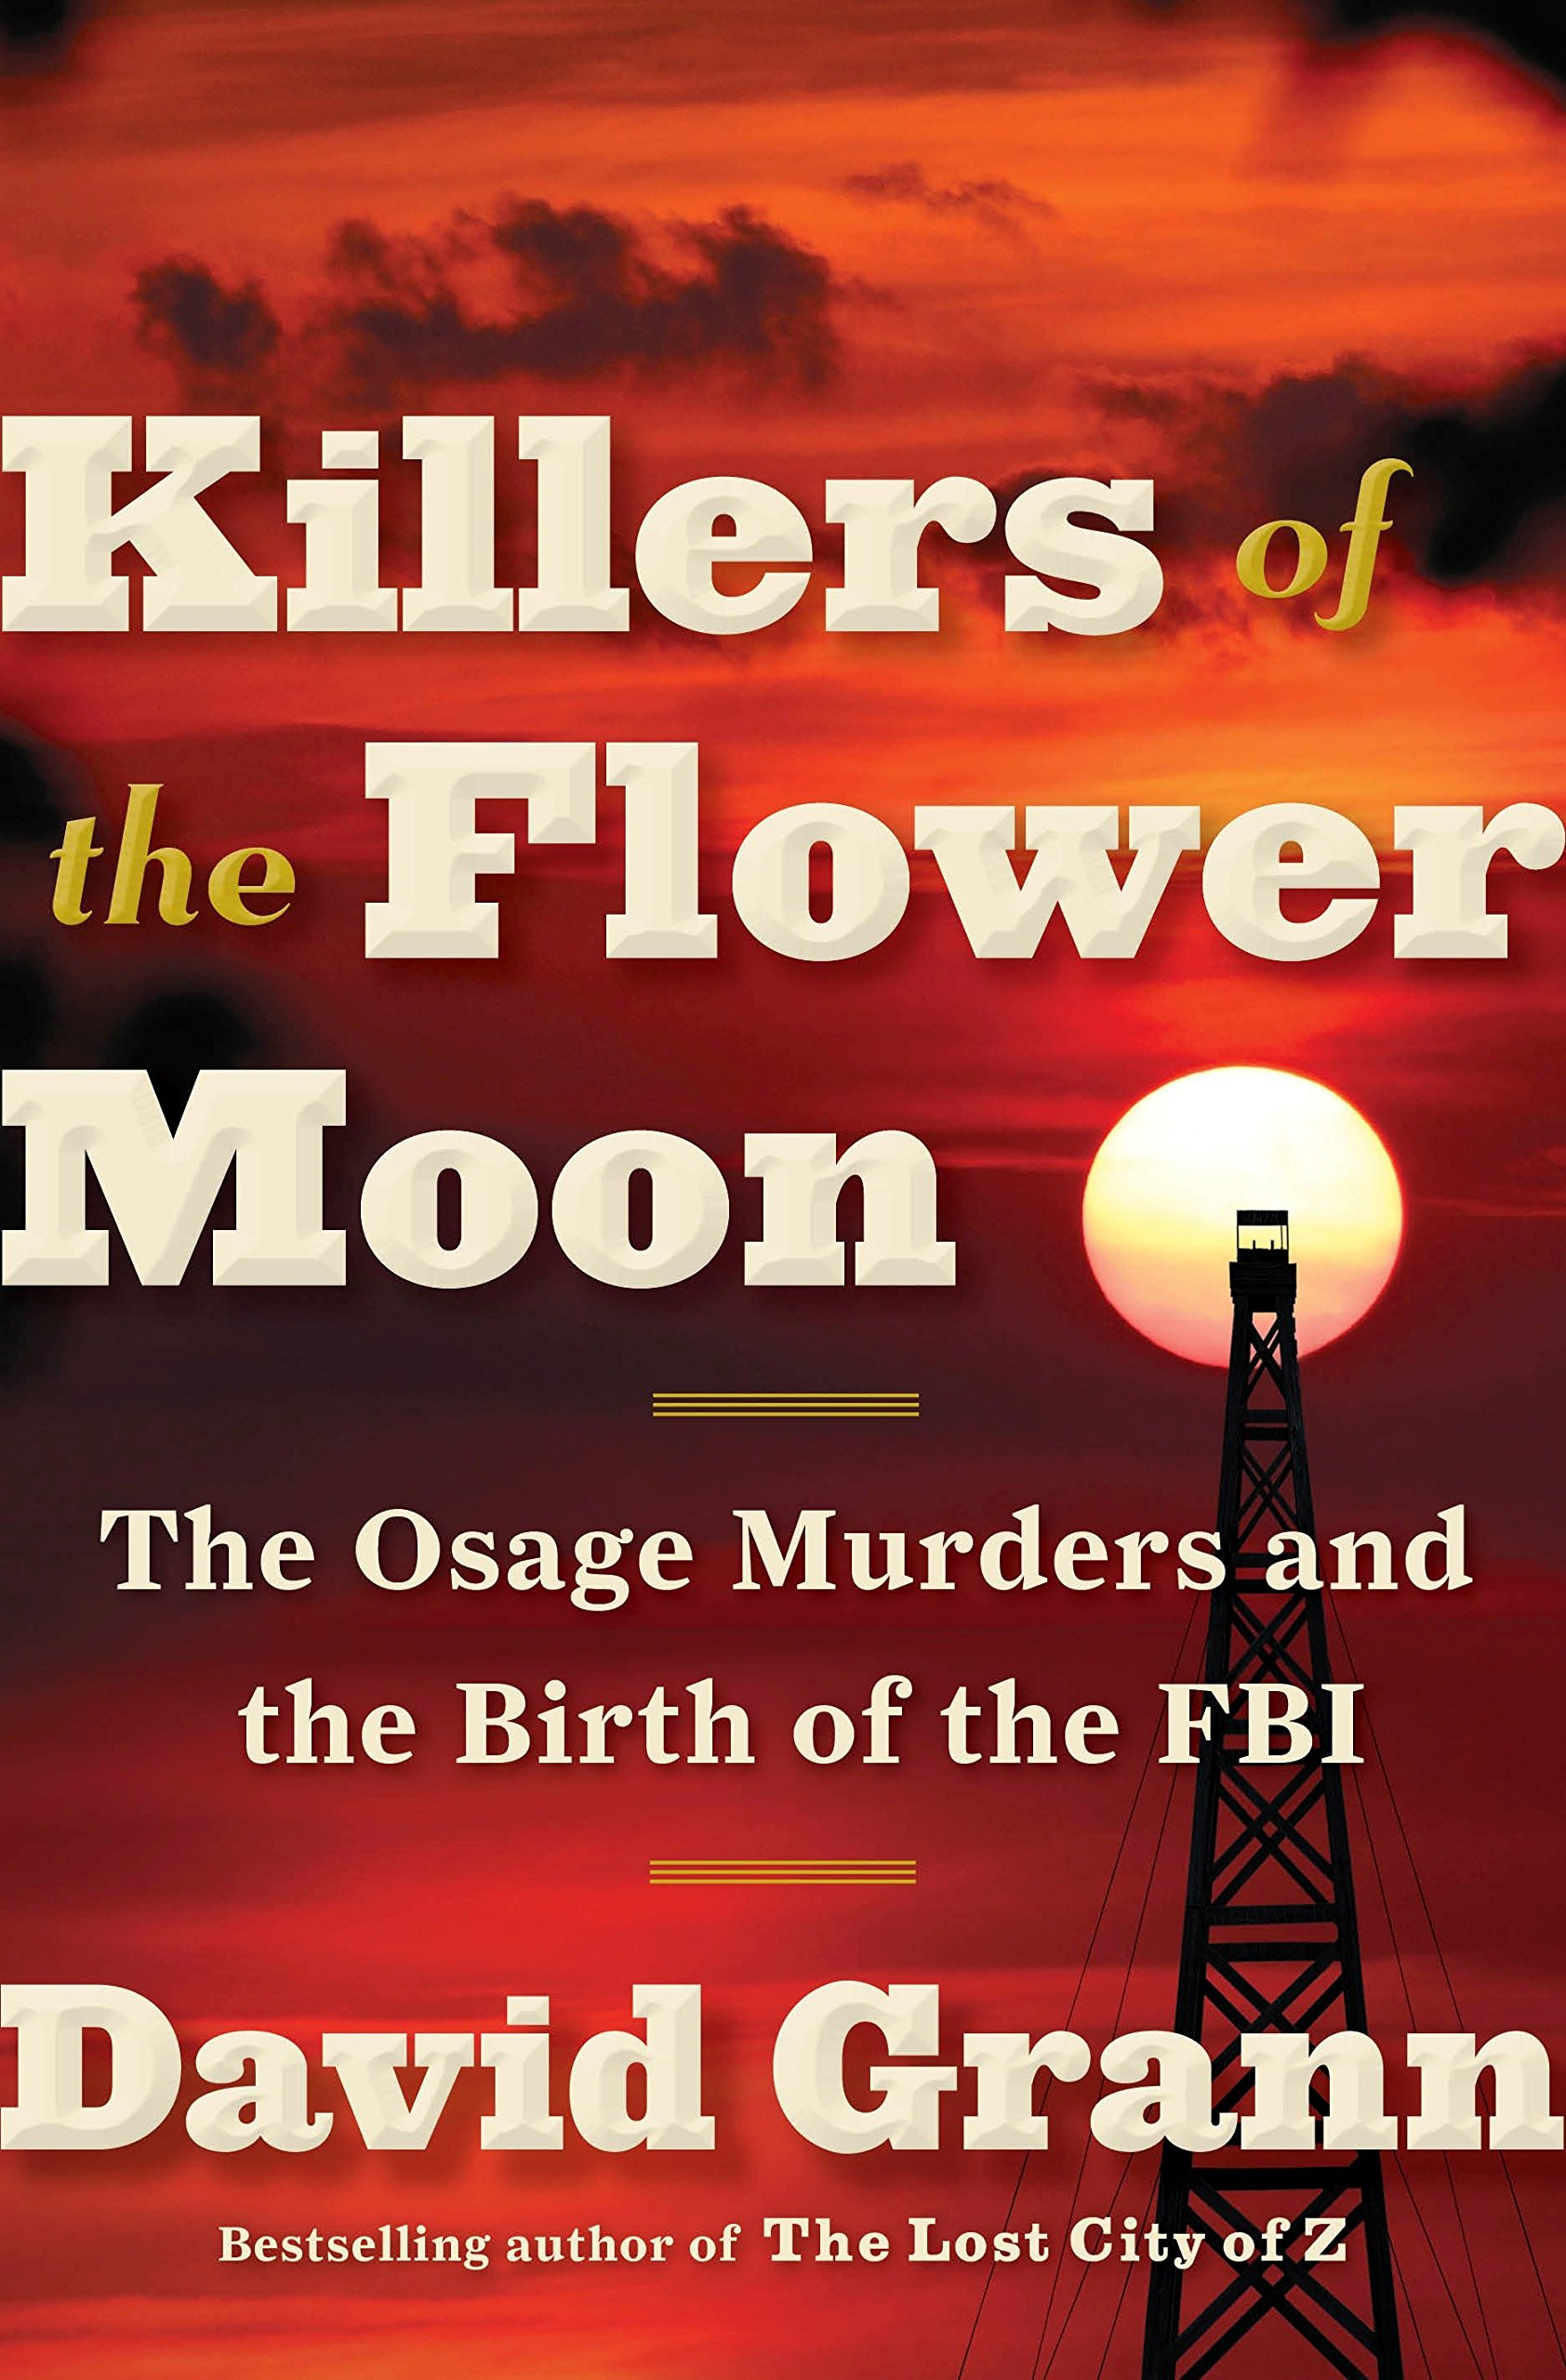 Killers of the Flower Moon: The Osage Murders and the Birth